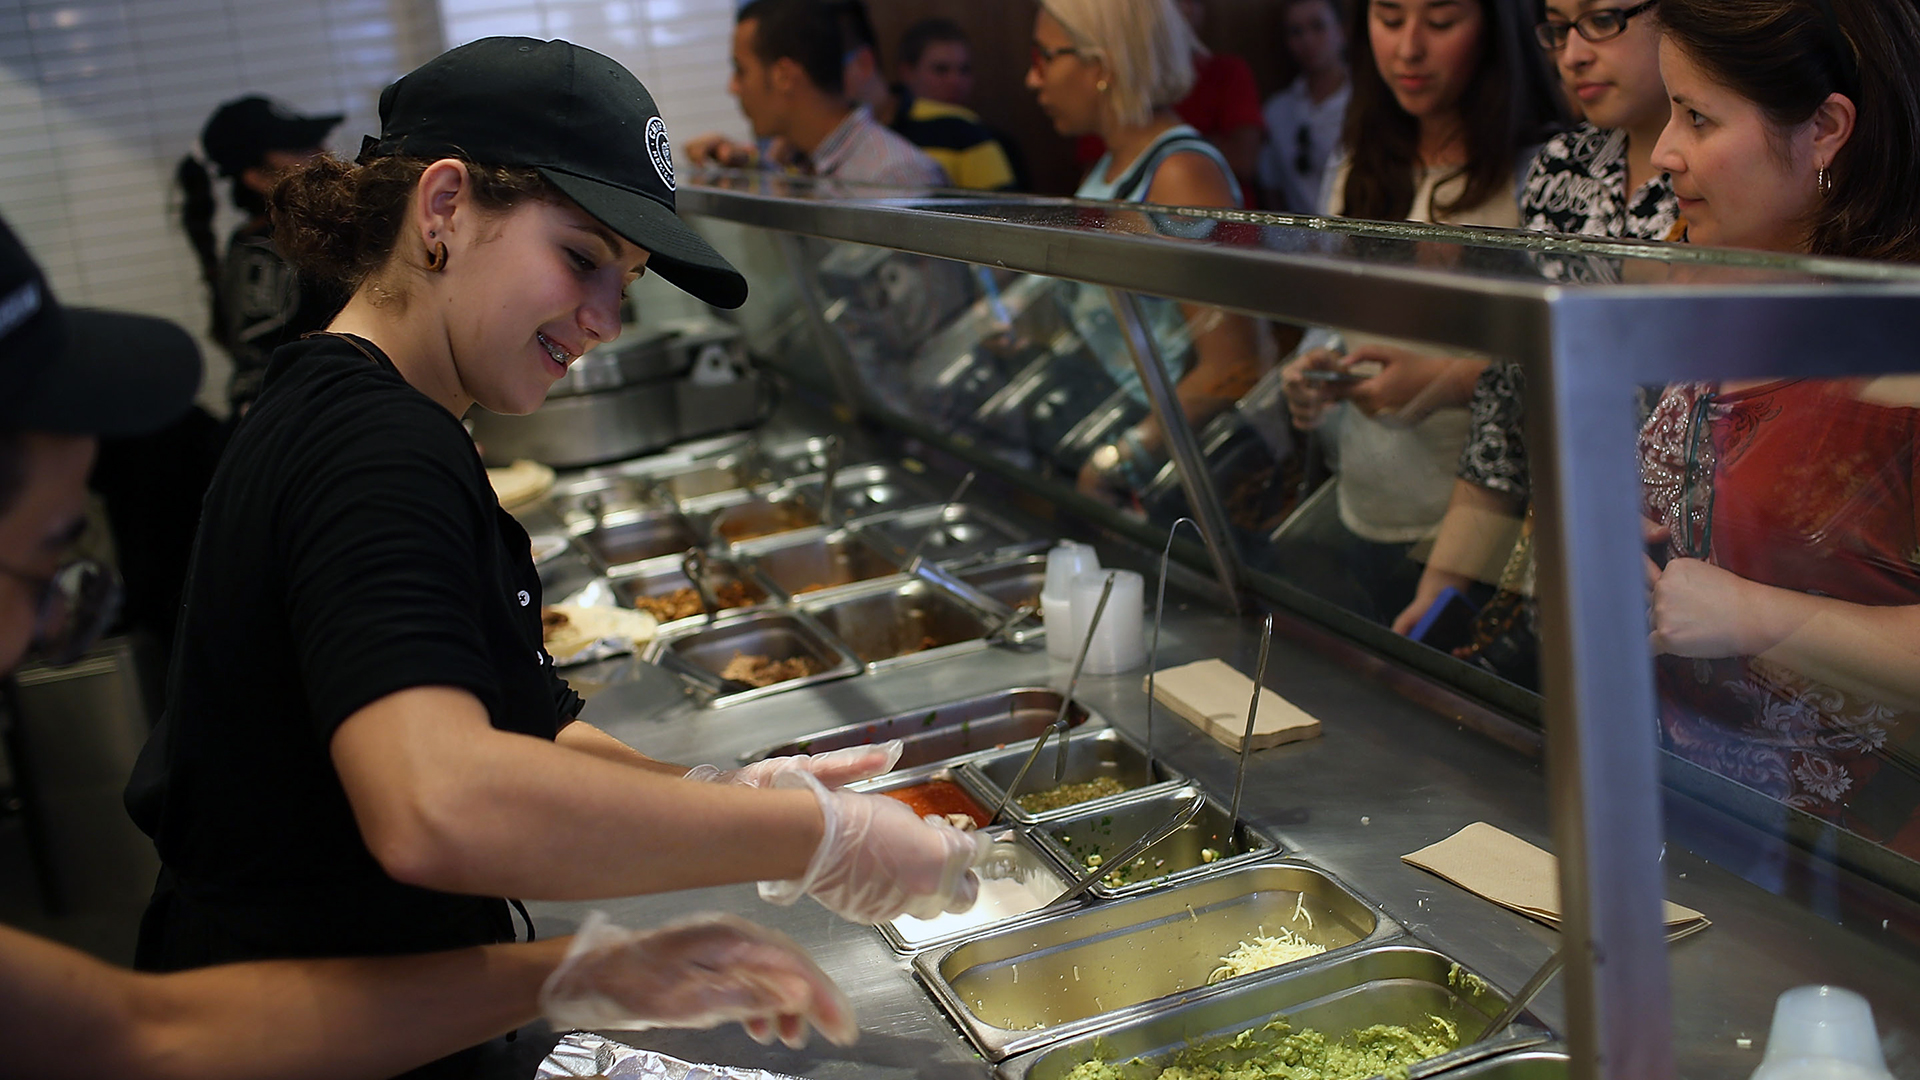 Chipotle assembly line-159532.jpg66149184